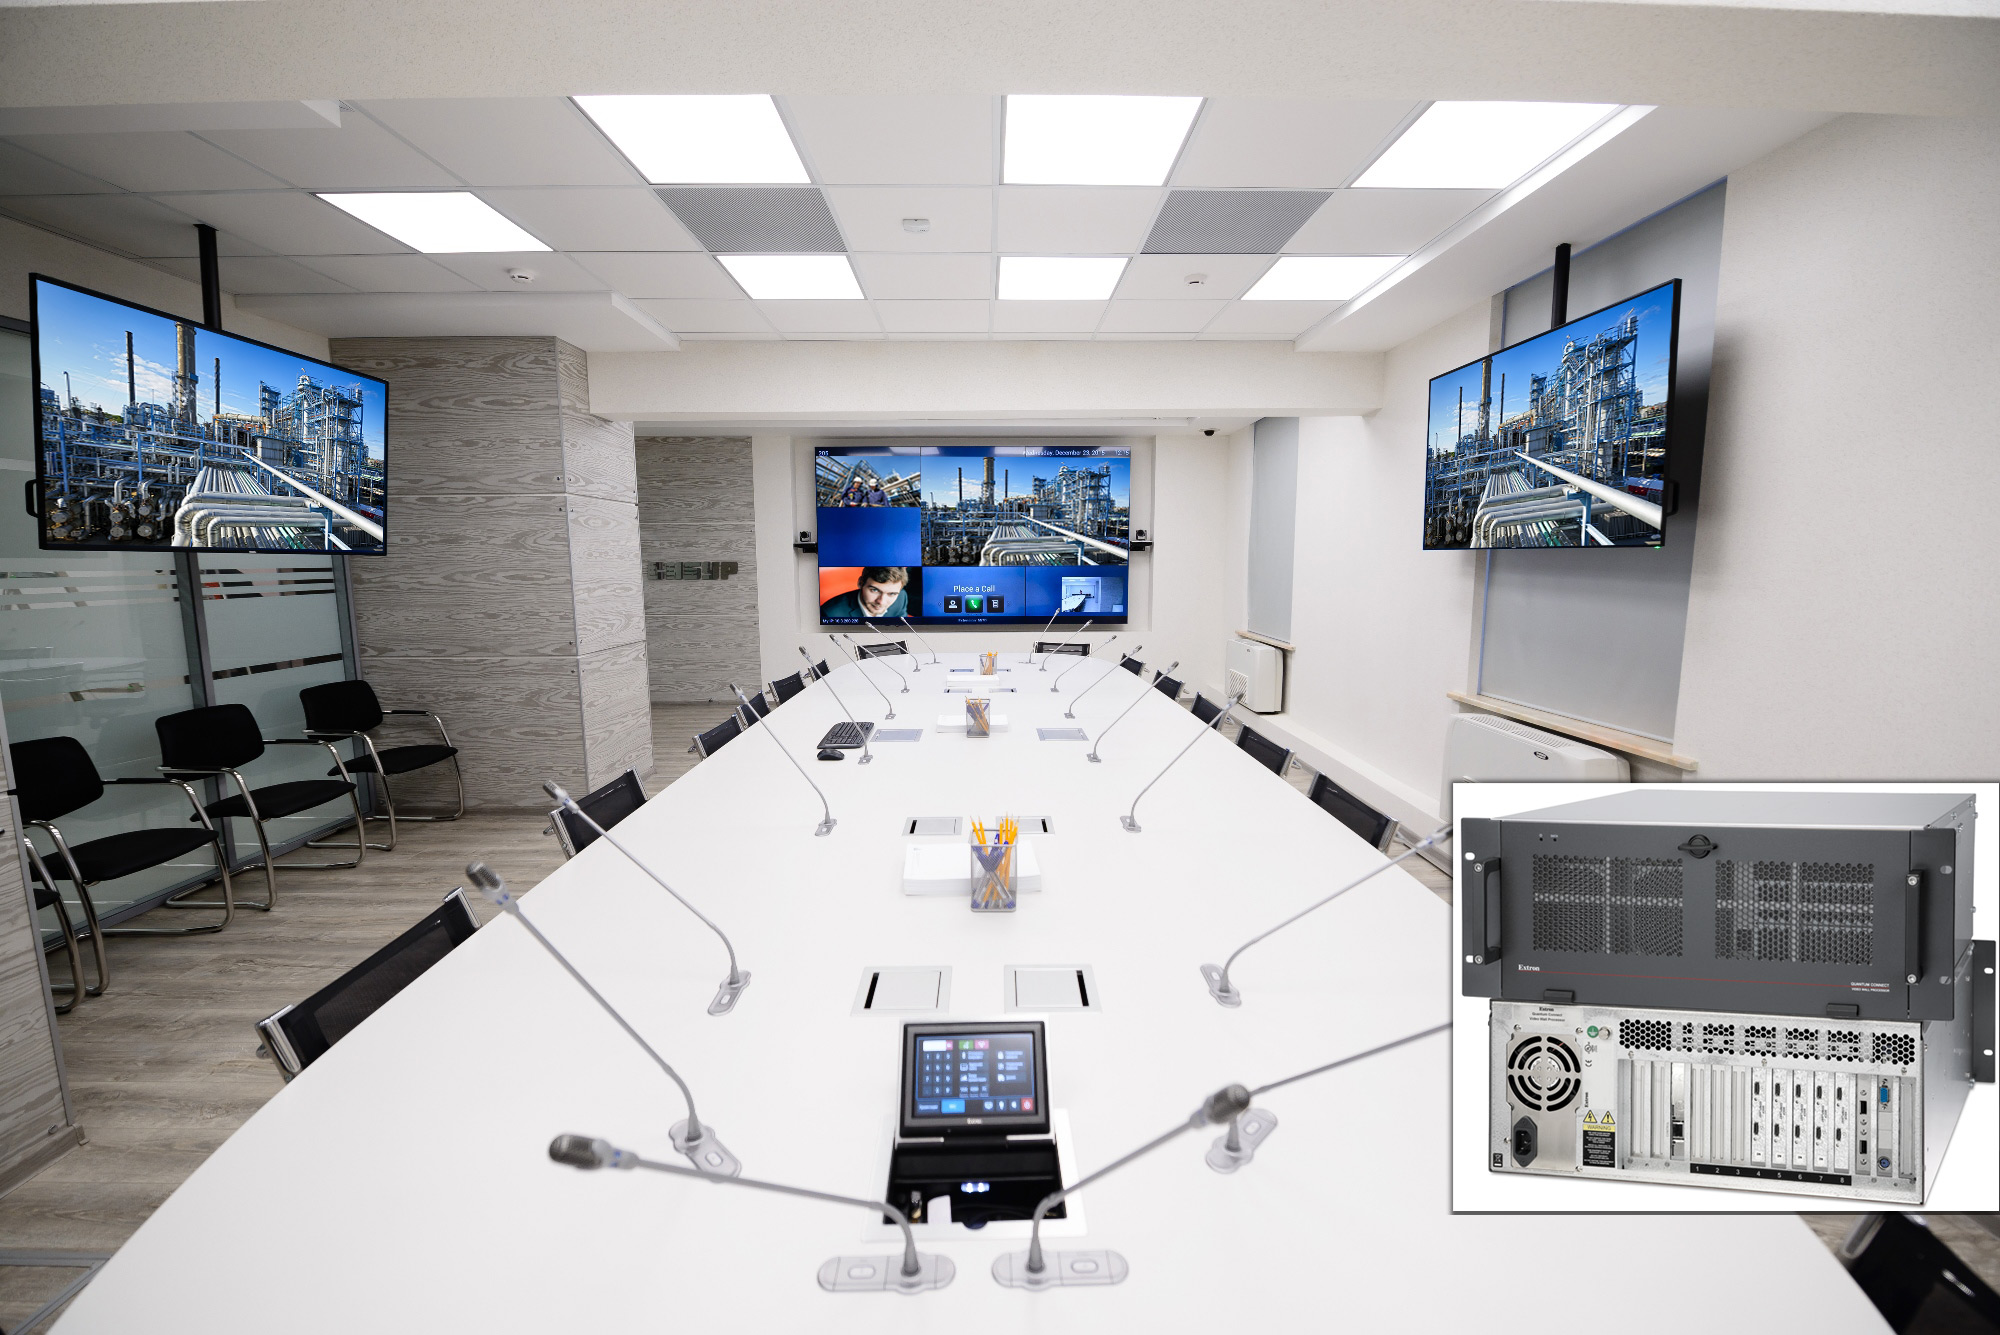 The 3x3 videowall driven by an Extron Quantum Connect processor enables the Moscow Executive Conference Room to serve as SIBUR's corporate nerve center.